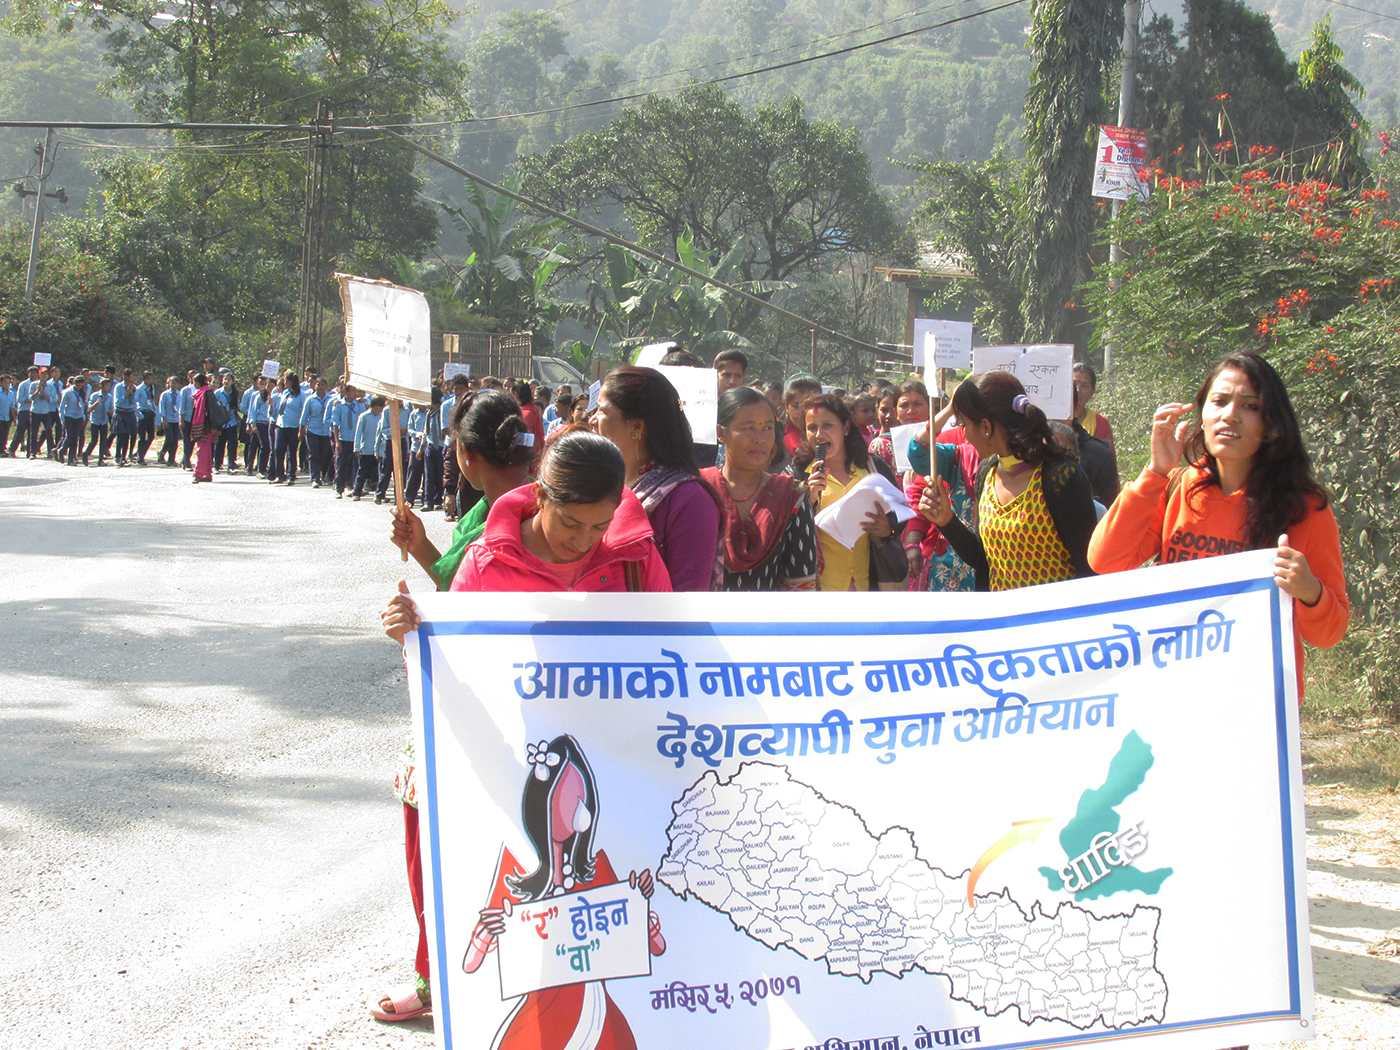 Signature Campaign and Rally in Dhading Demanding Equal Citizenship Rights